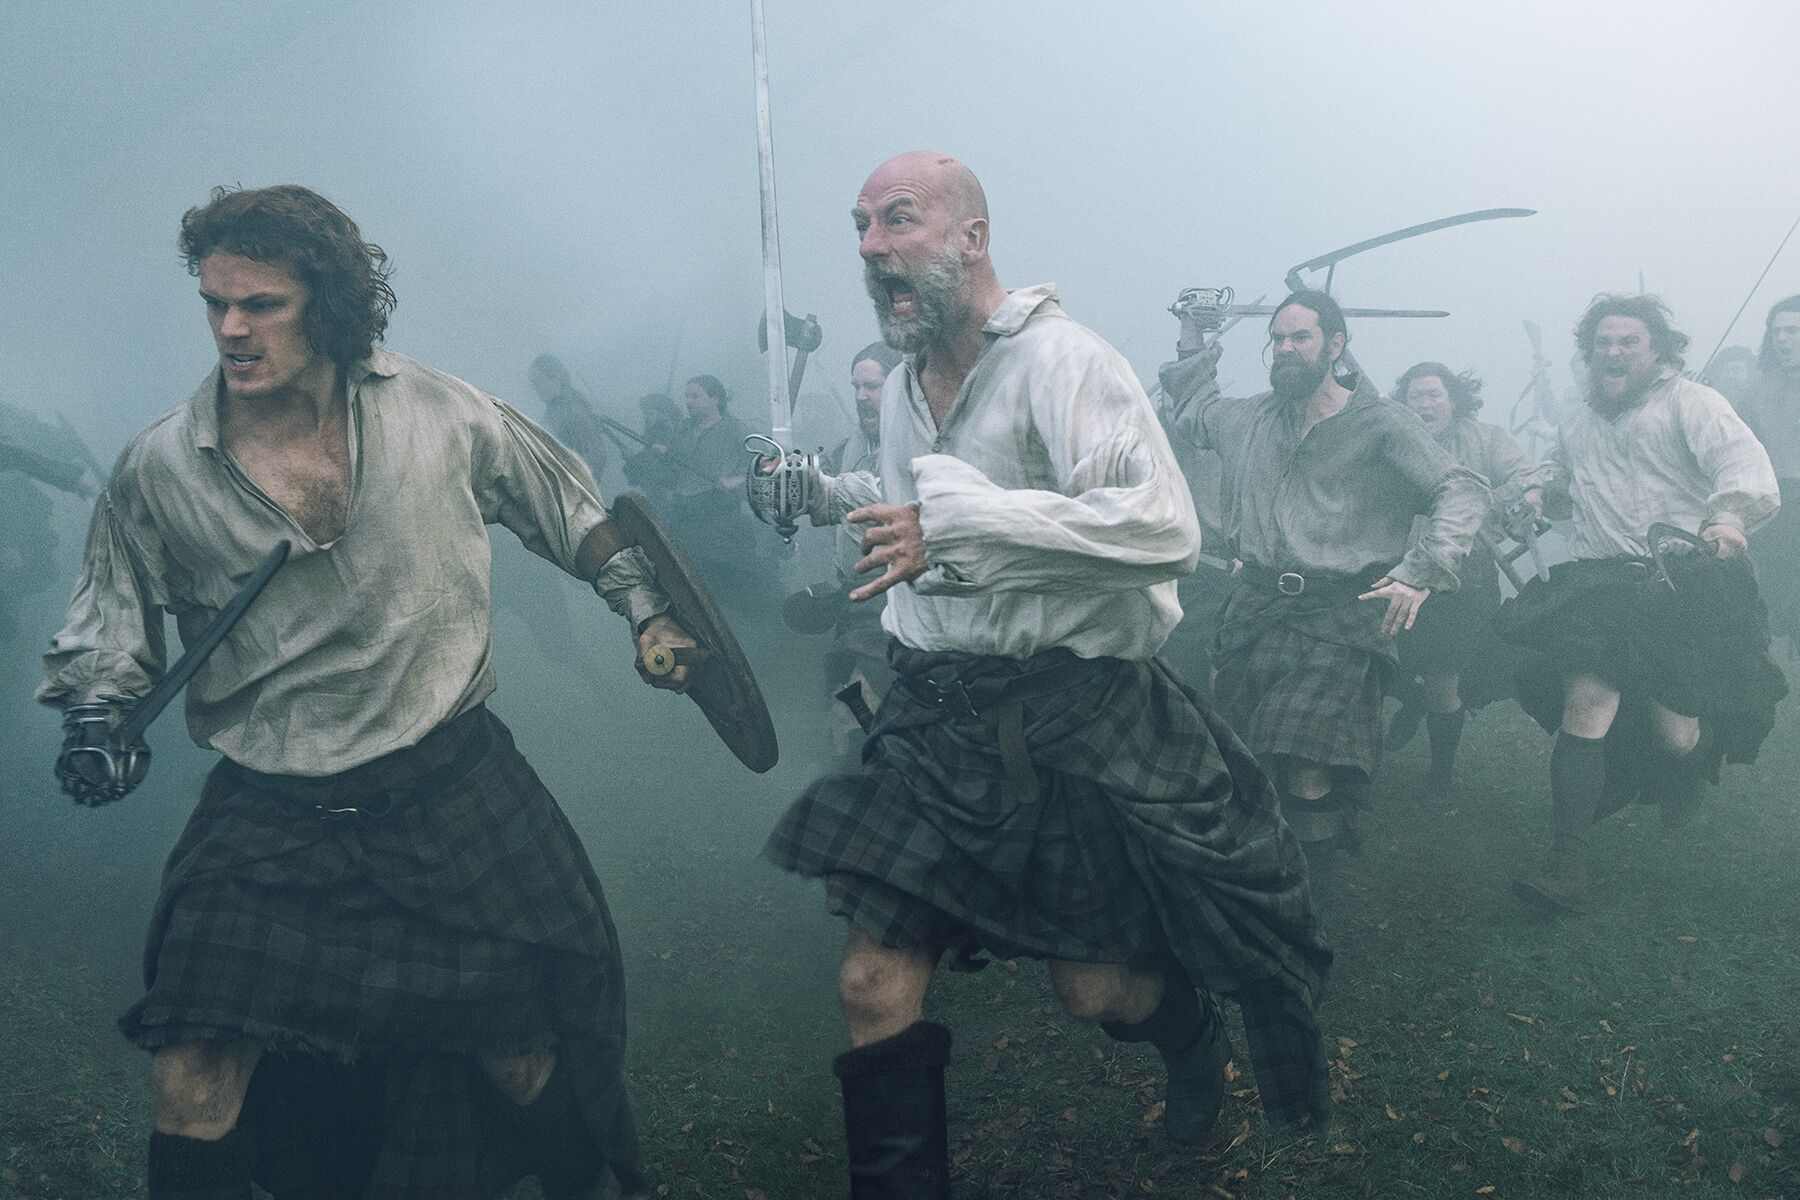 This day in Outlander history: The Battle of Prestonpans